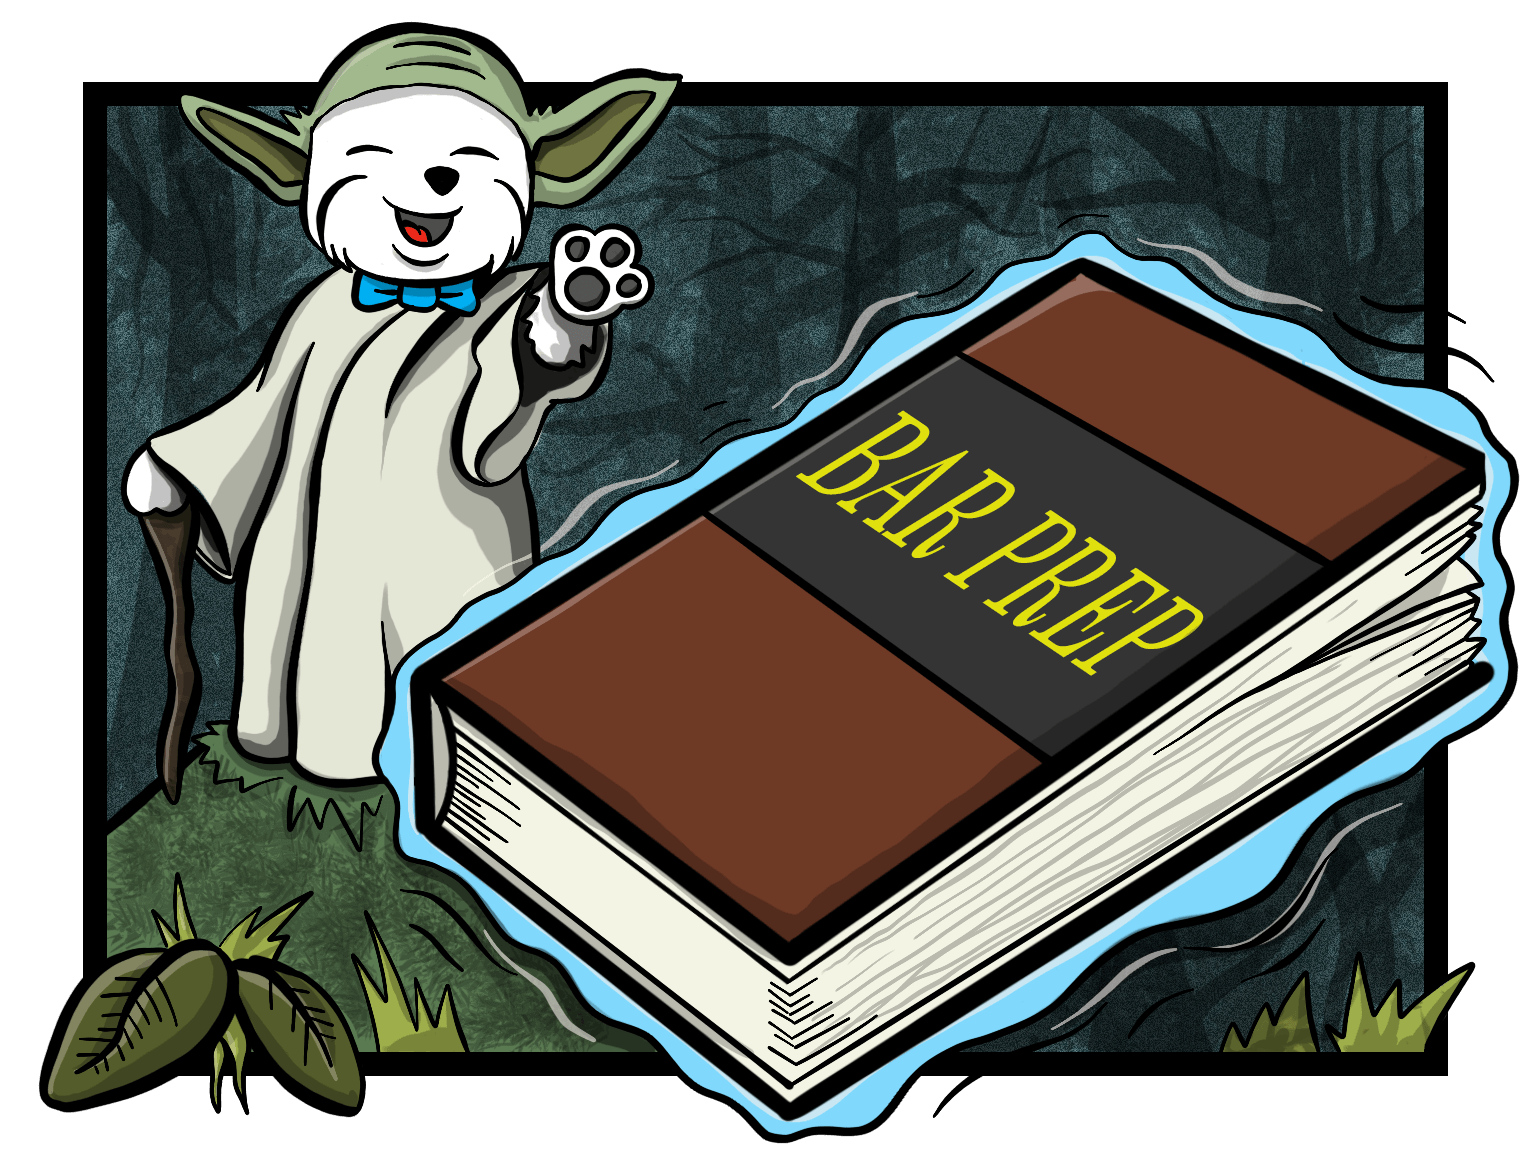 Illustration of mascot dressed as Yoda lifting the book using his Jedi powers.